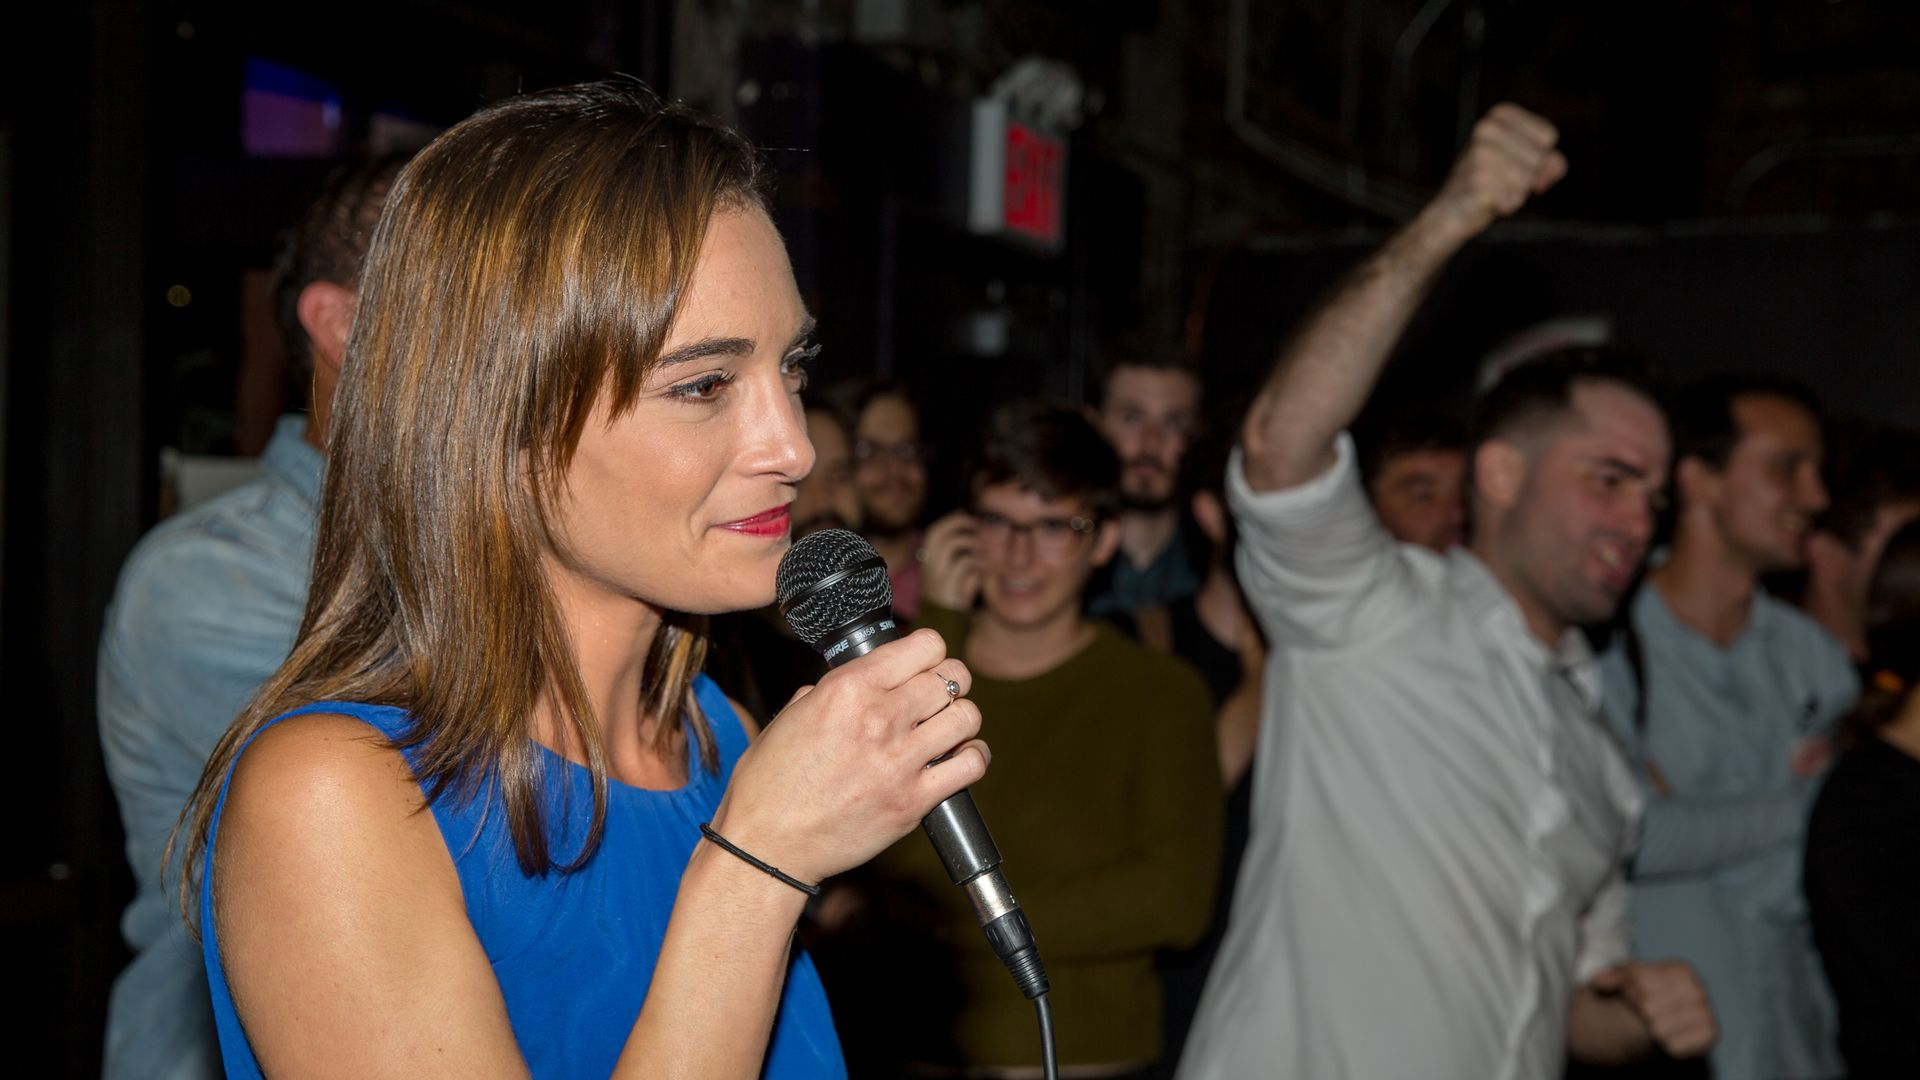 Democratic Socialist Julia Salazar, a  candidate for New York state Senate, delivers her victory speech. Photo: Scott Heins/Getty Images)